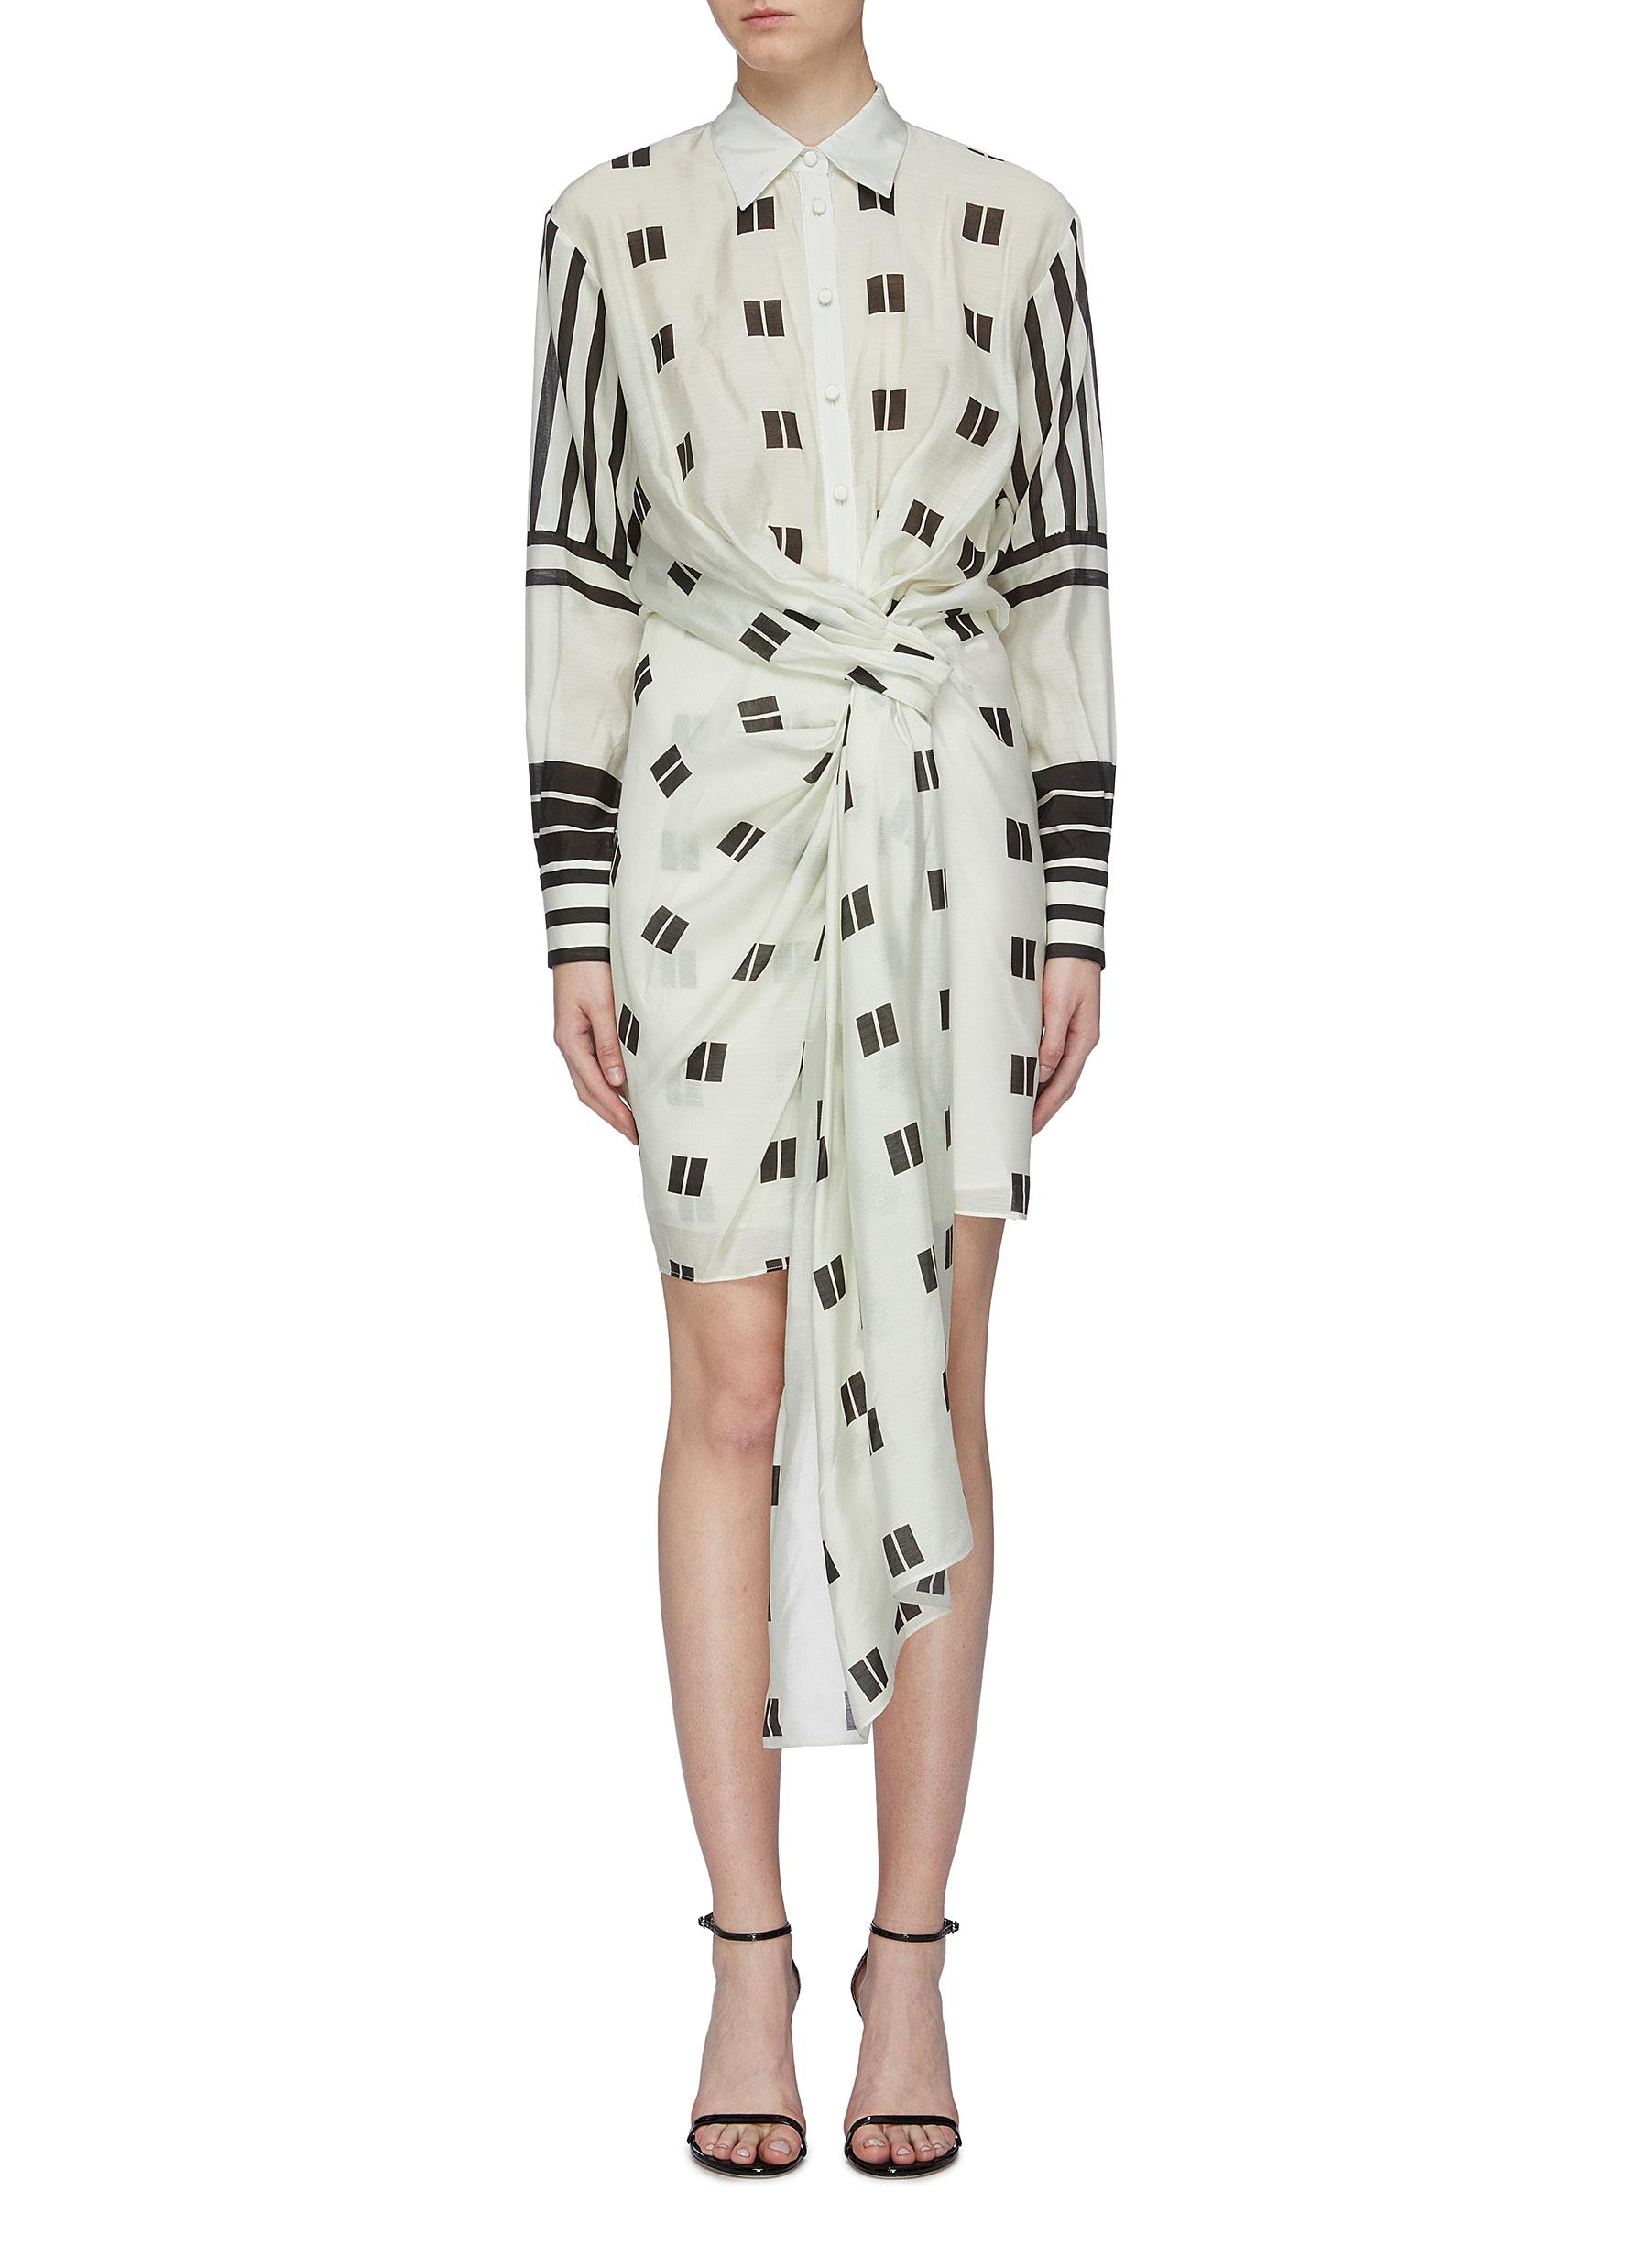 Knot front drape geometric stripe print shirt dress by Oscar De La Renta